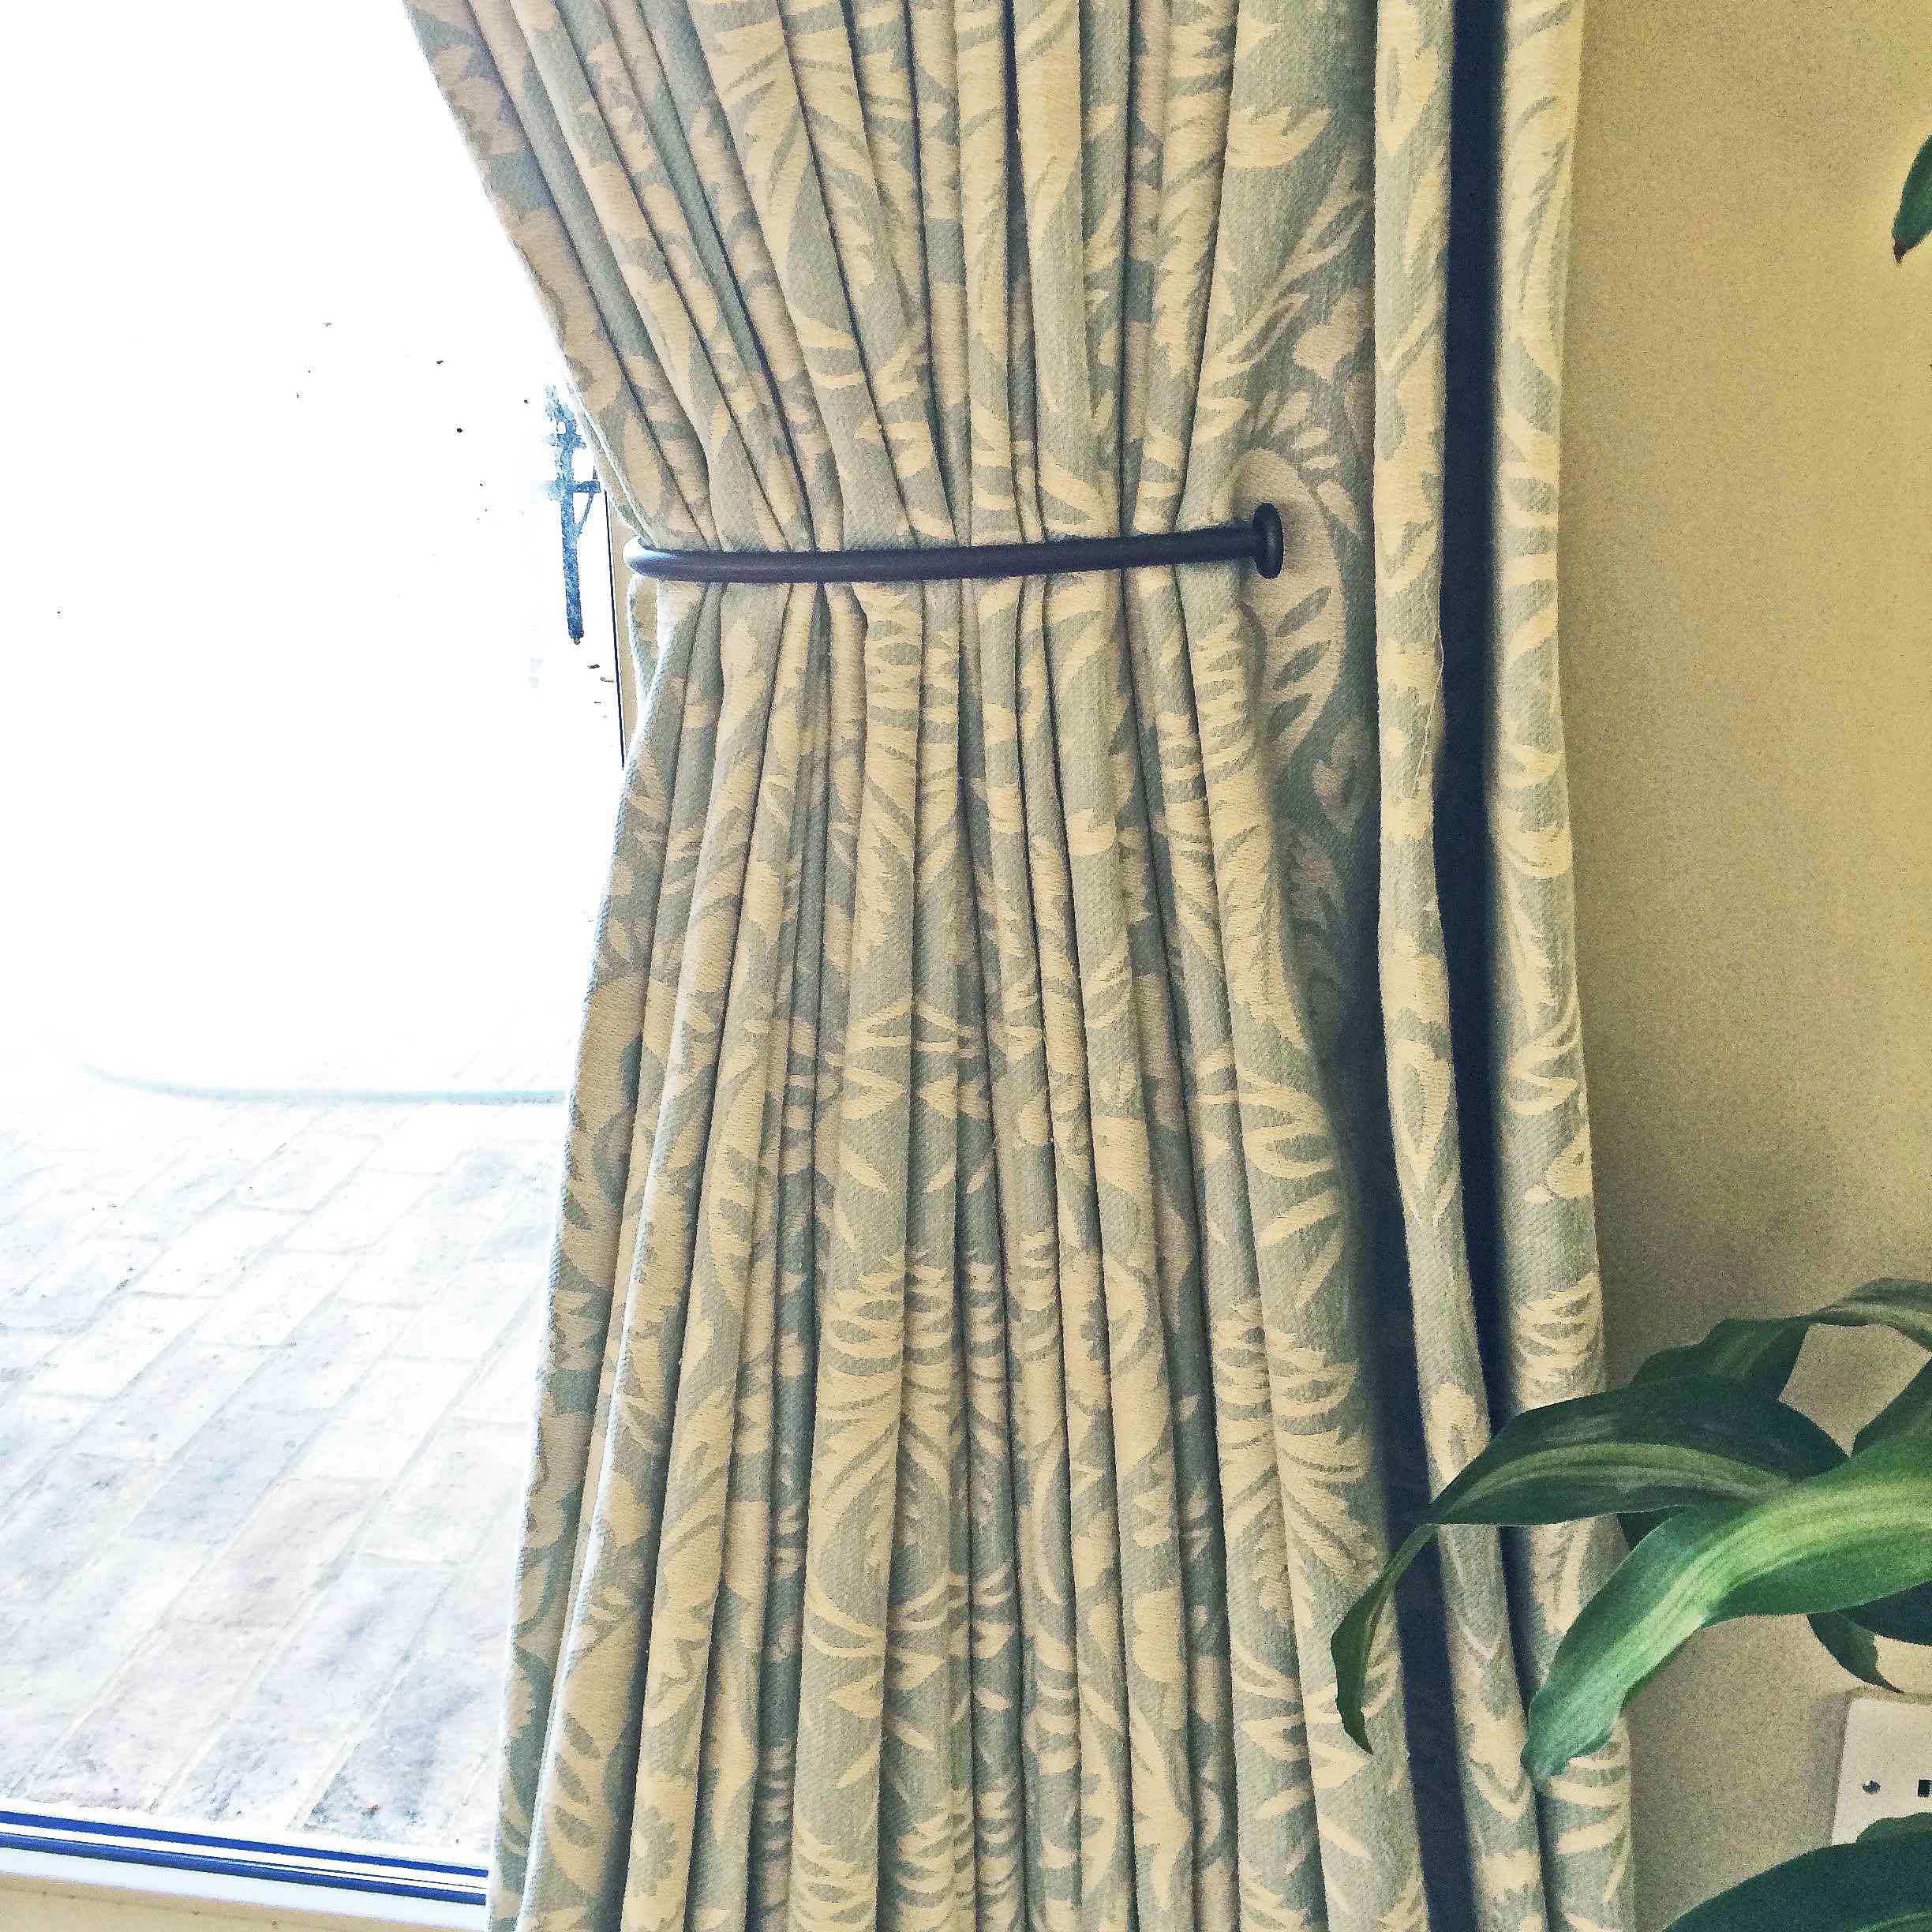 Harewood Curtains Detail PR square jpeg.jpg